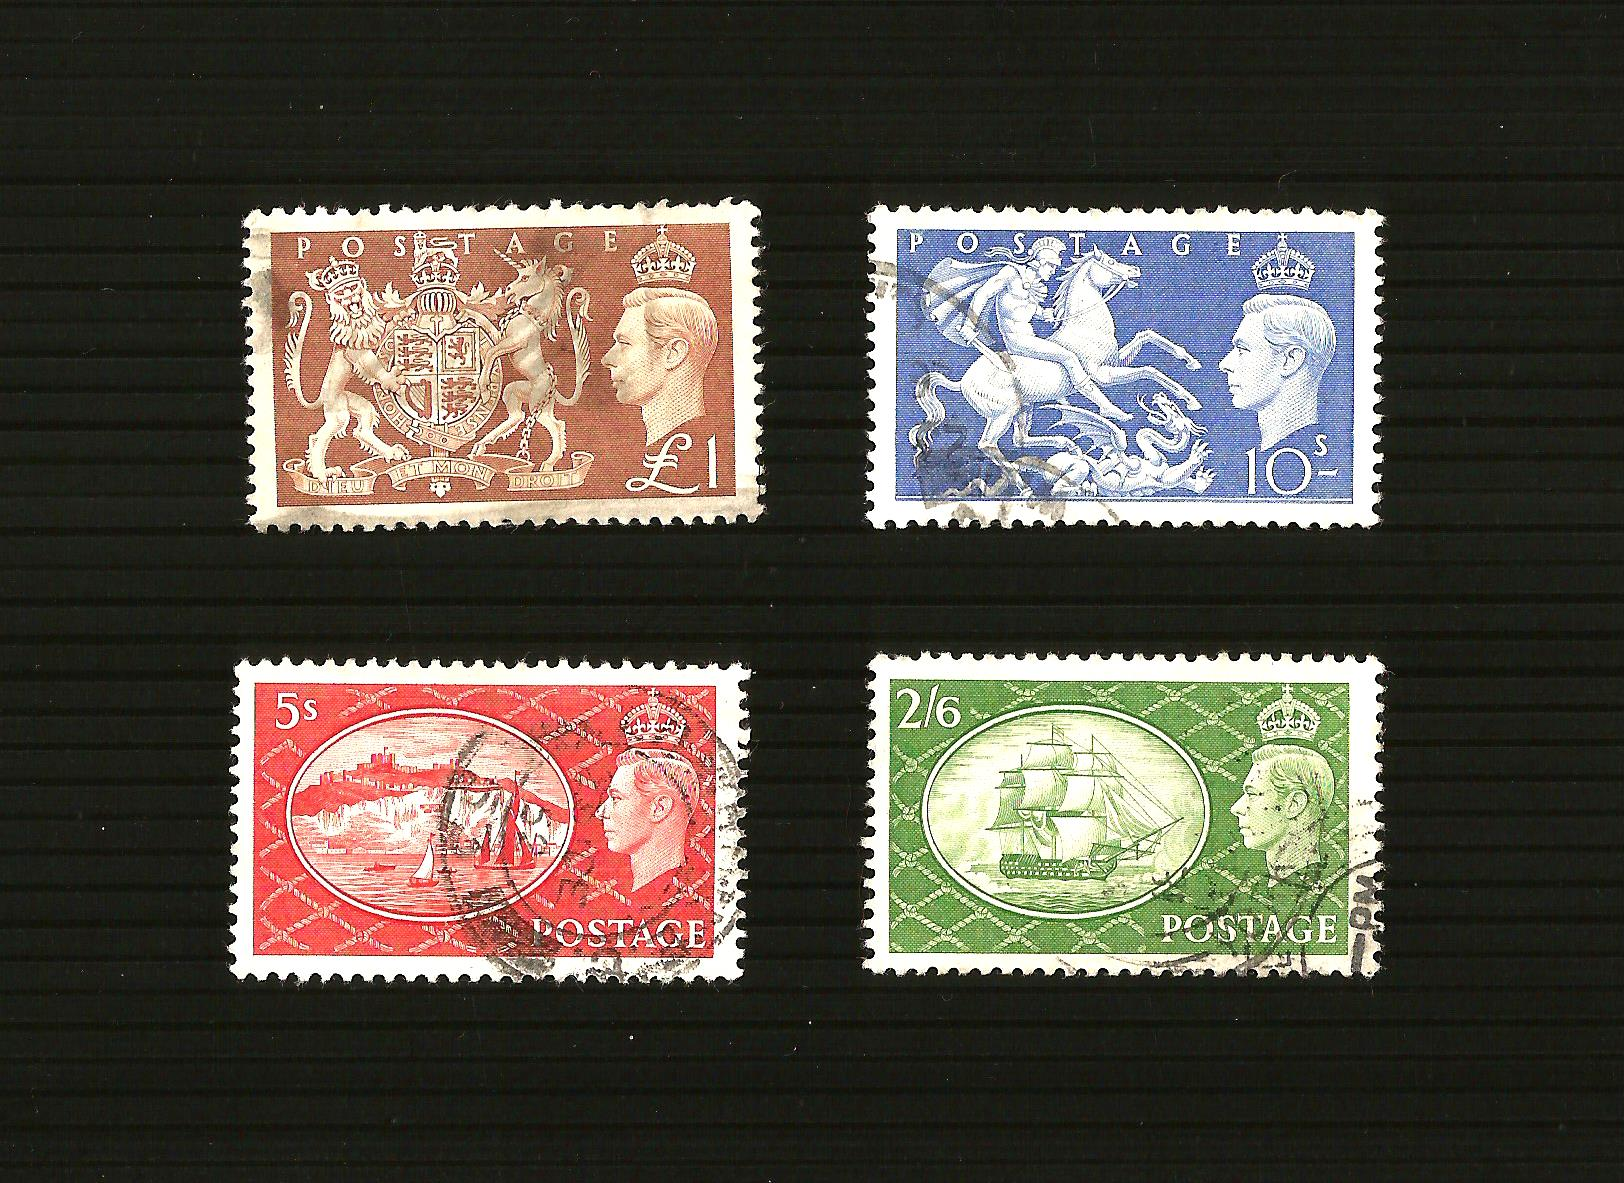 GB 1951 SG509 - 512 Festival High Value Definitives Very Good to